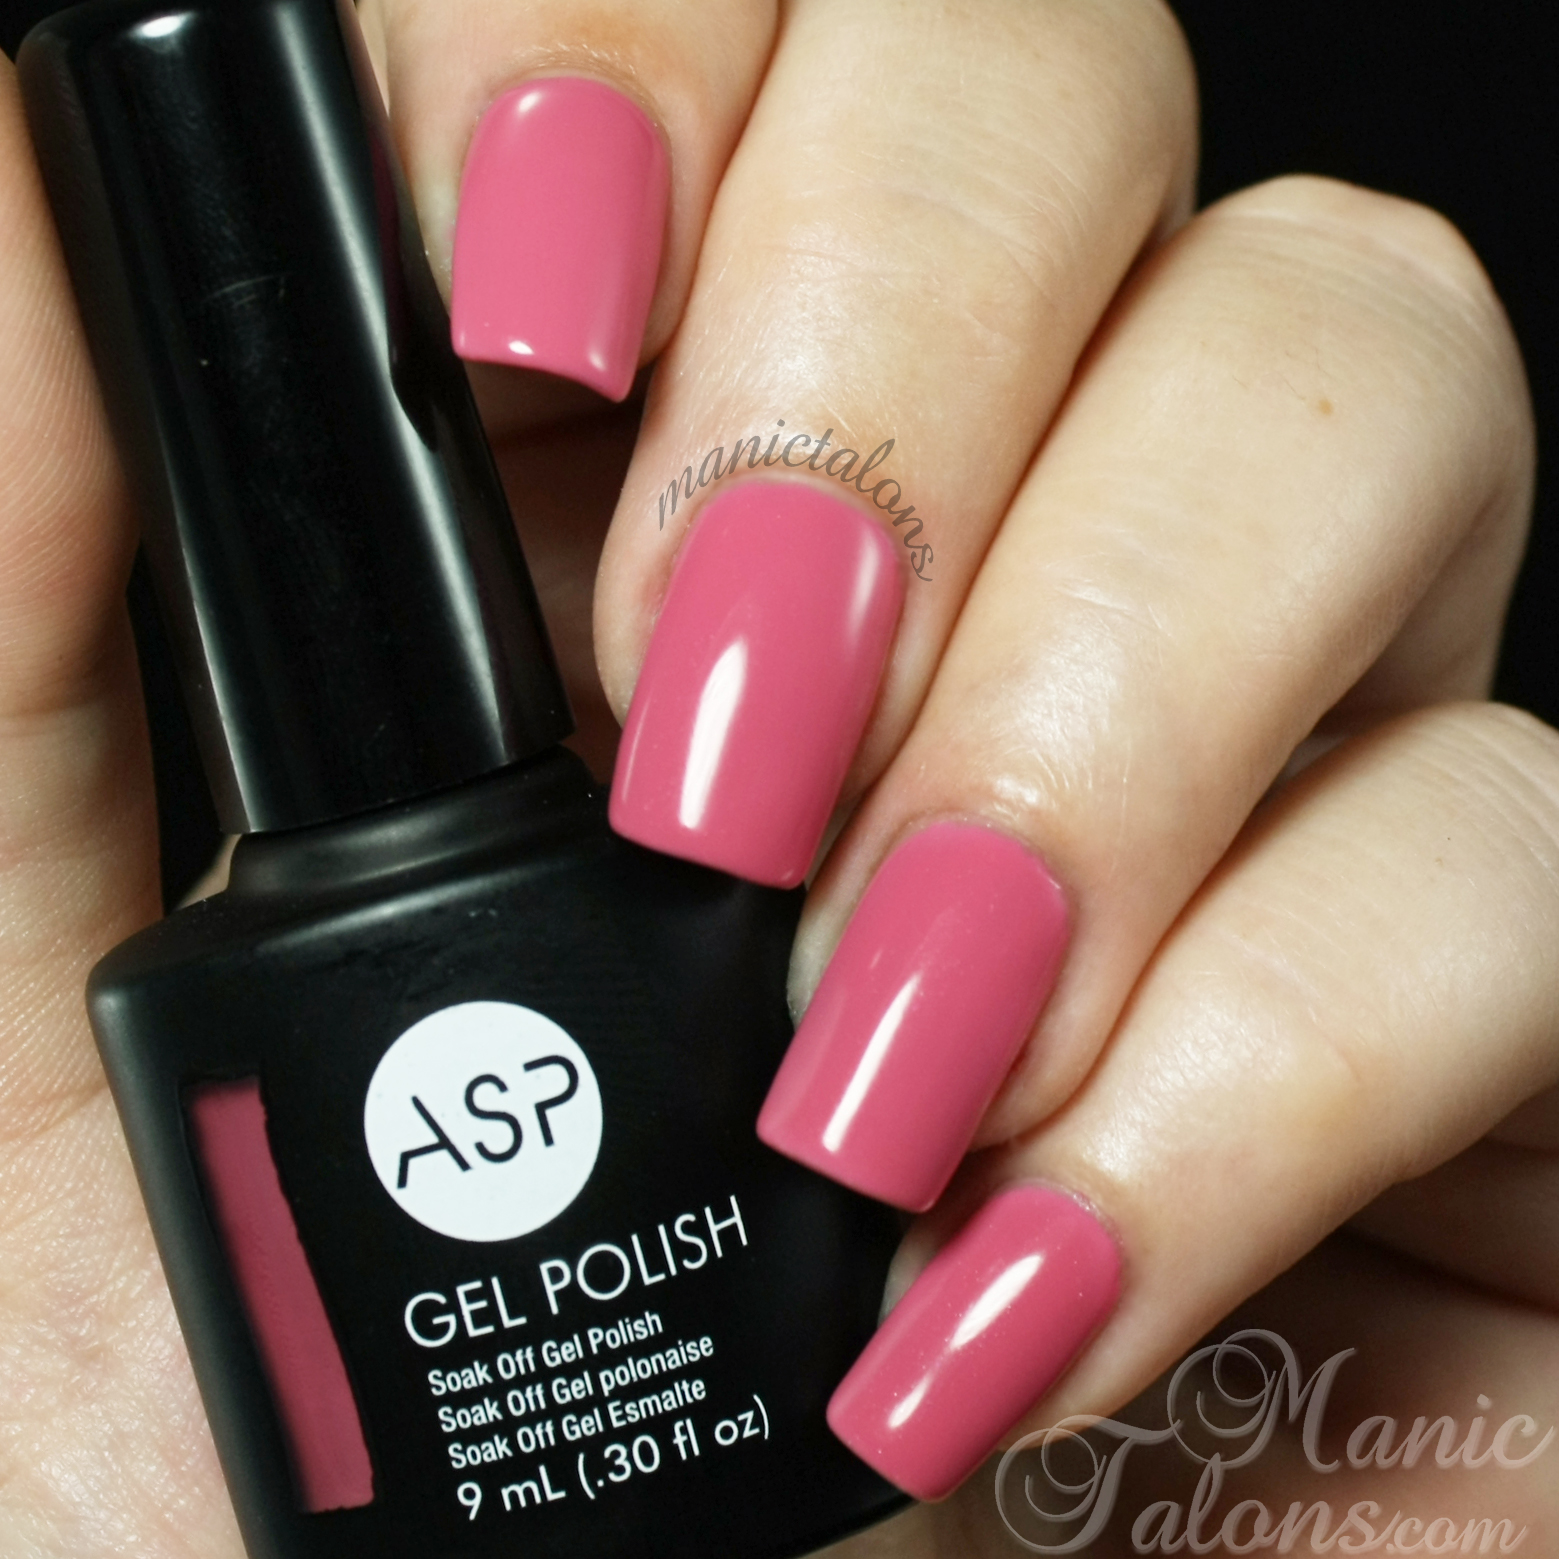 ASP Gel Polish Coral Cove Swatch